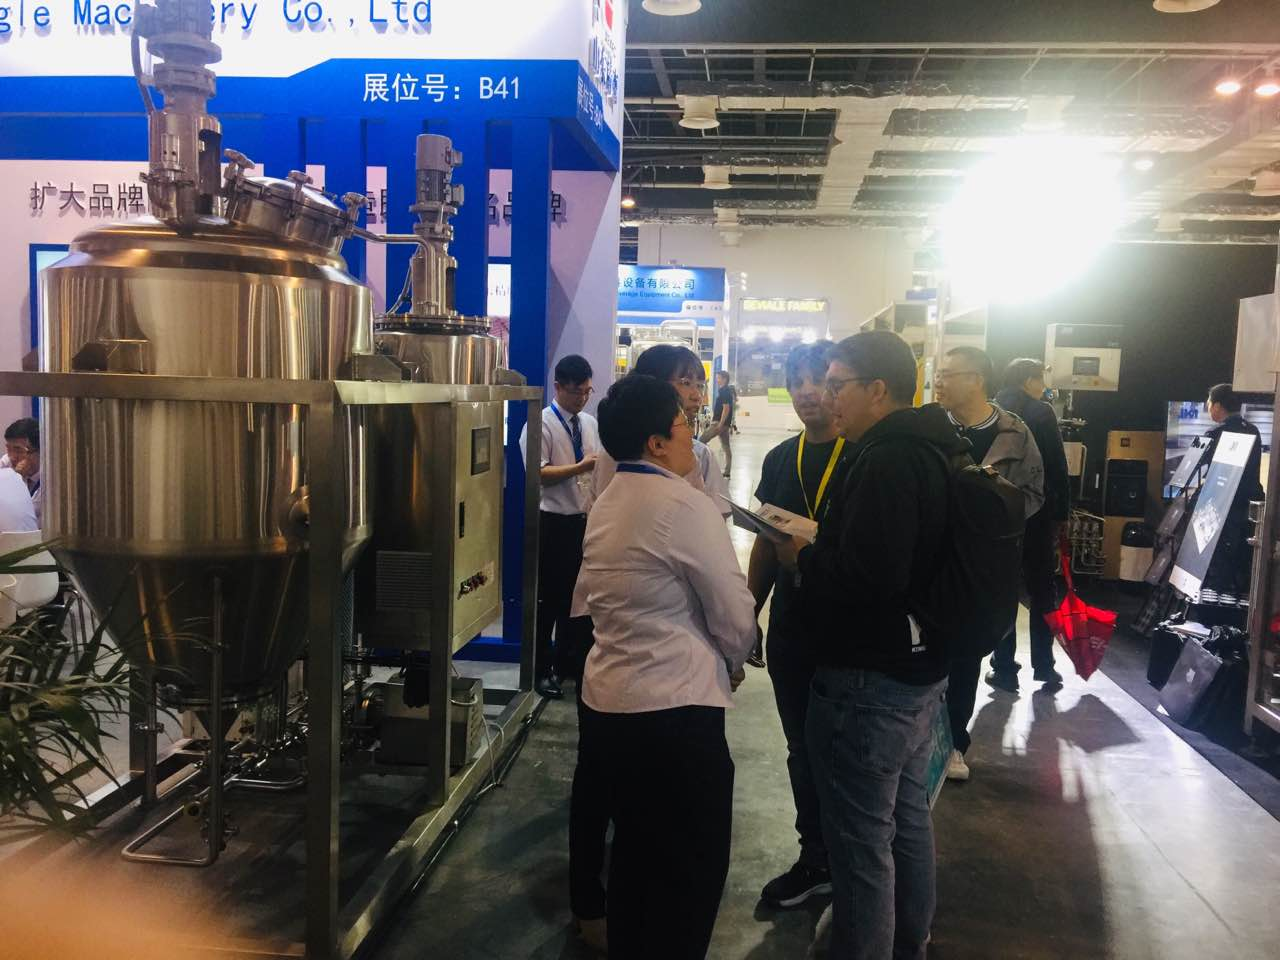 WEMAC group attended beer equipment exhibition in Shanghai